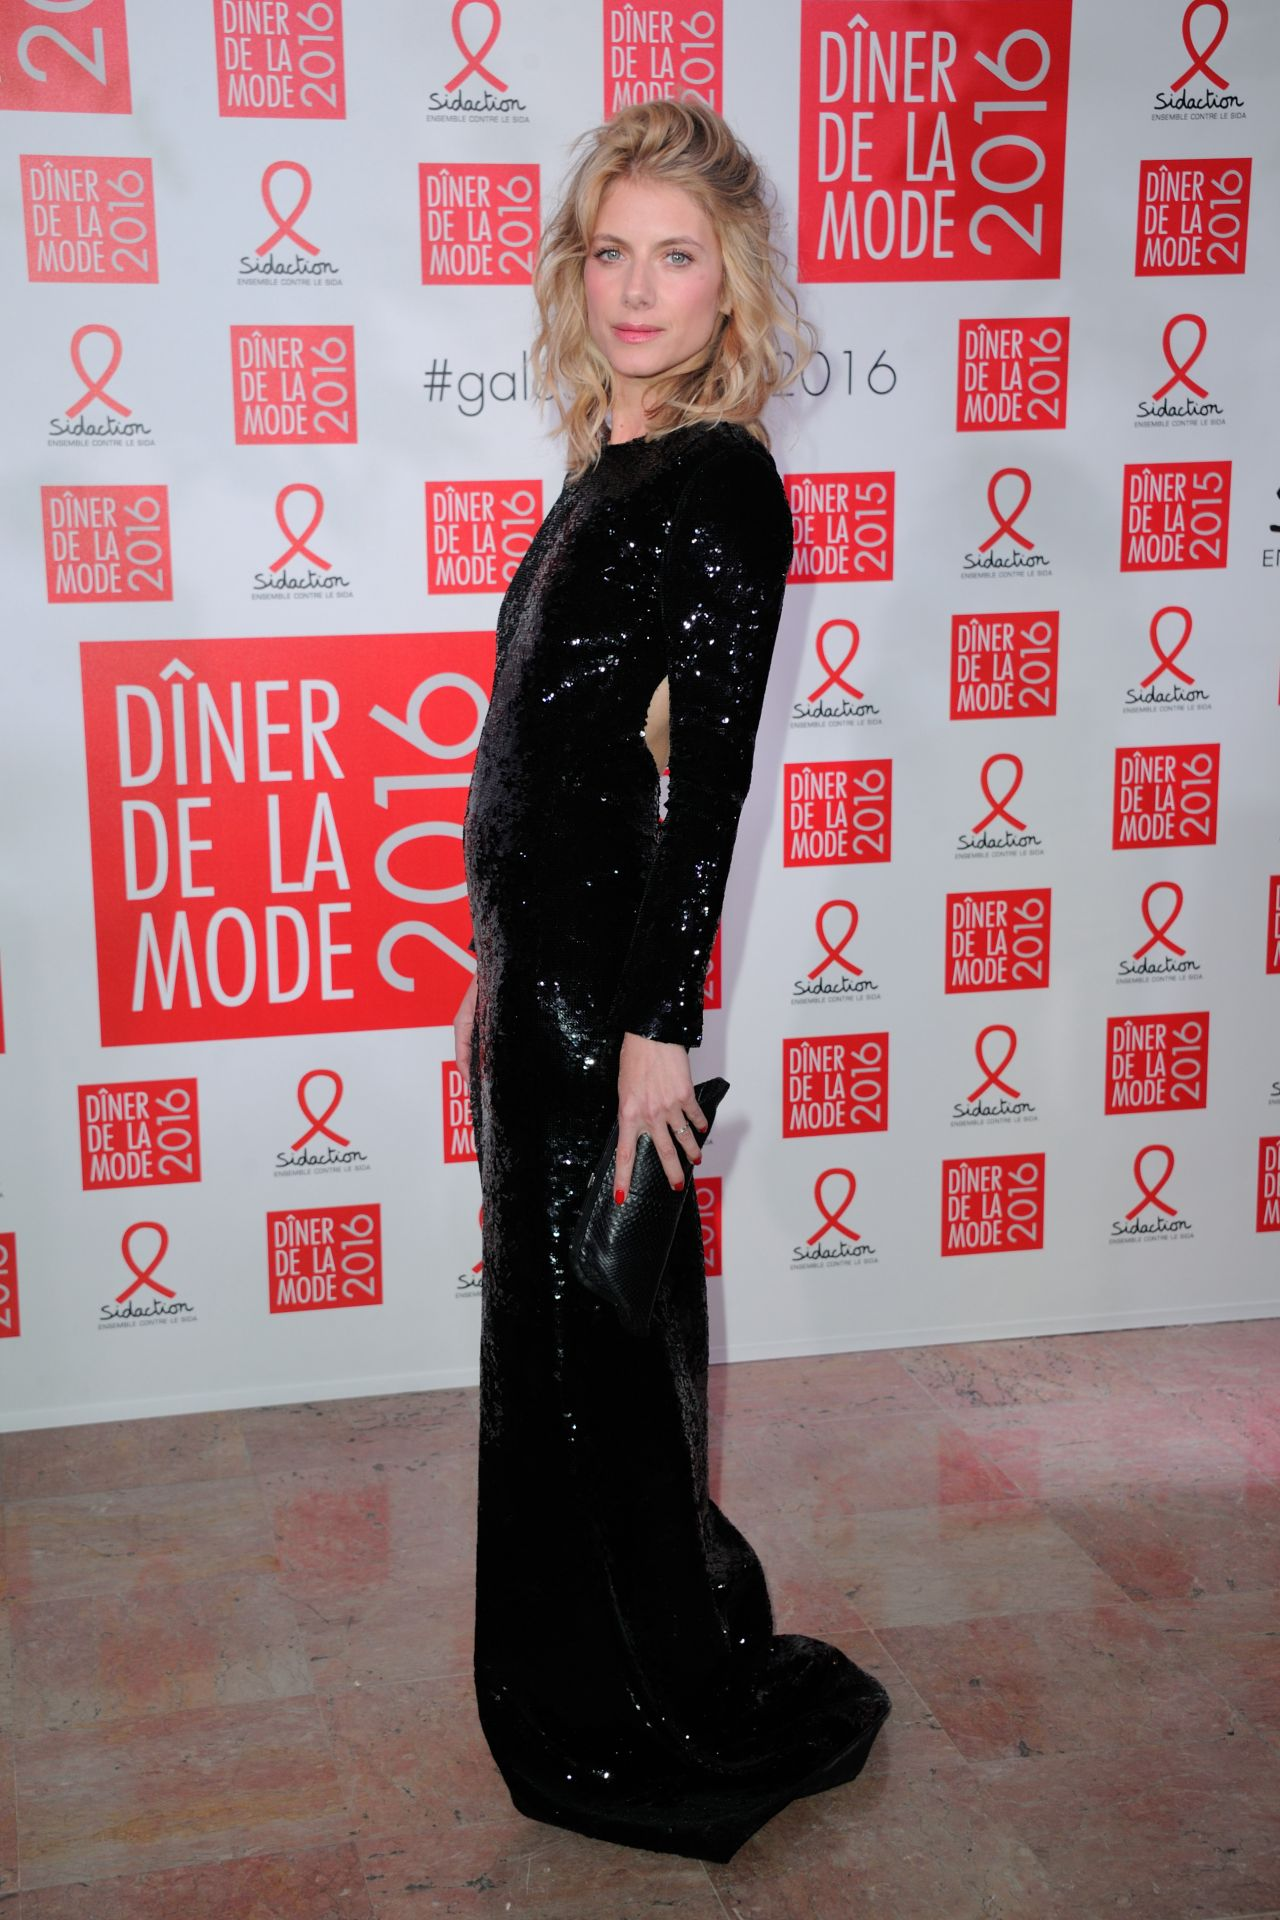 melanie-laurent-sidaction-gala-dinner-2016-in-paris-1